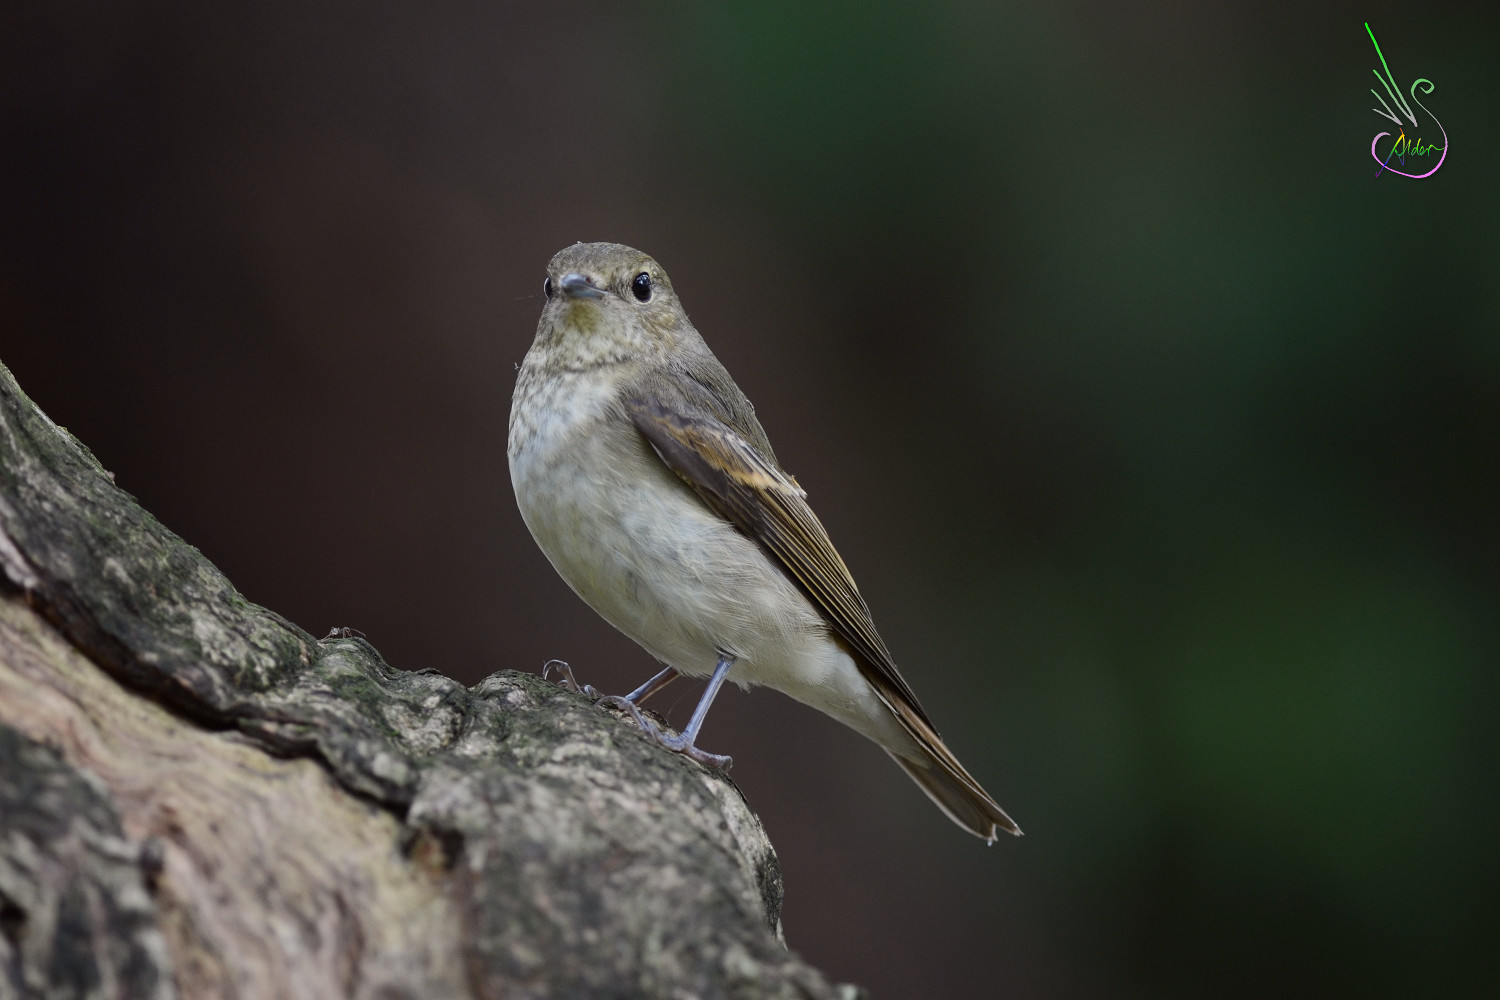 Narcissus_Flycatcher_6373